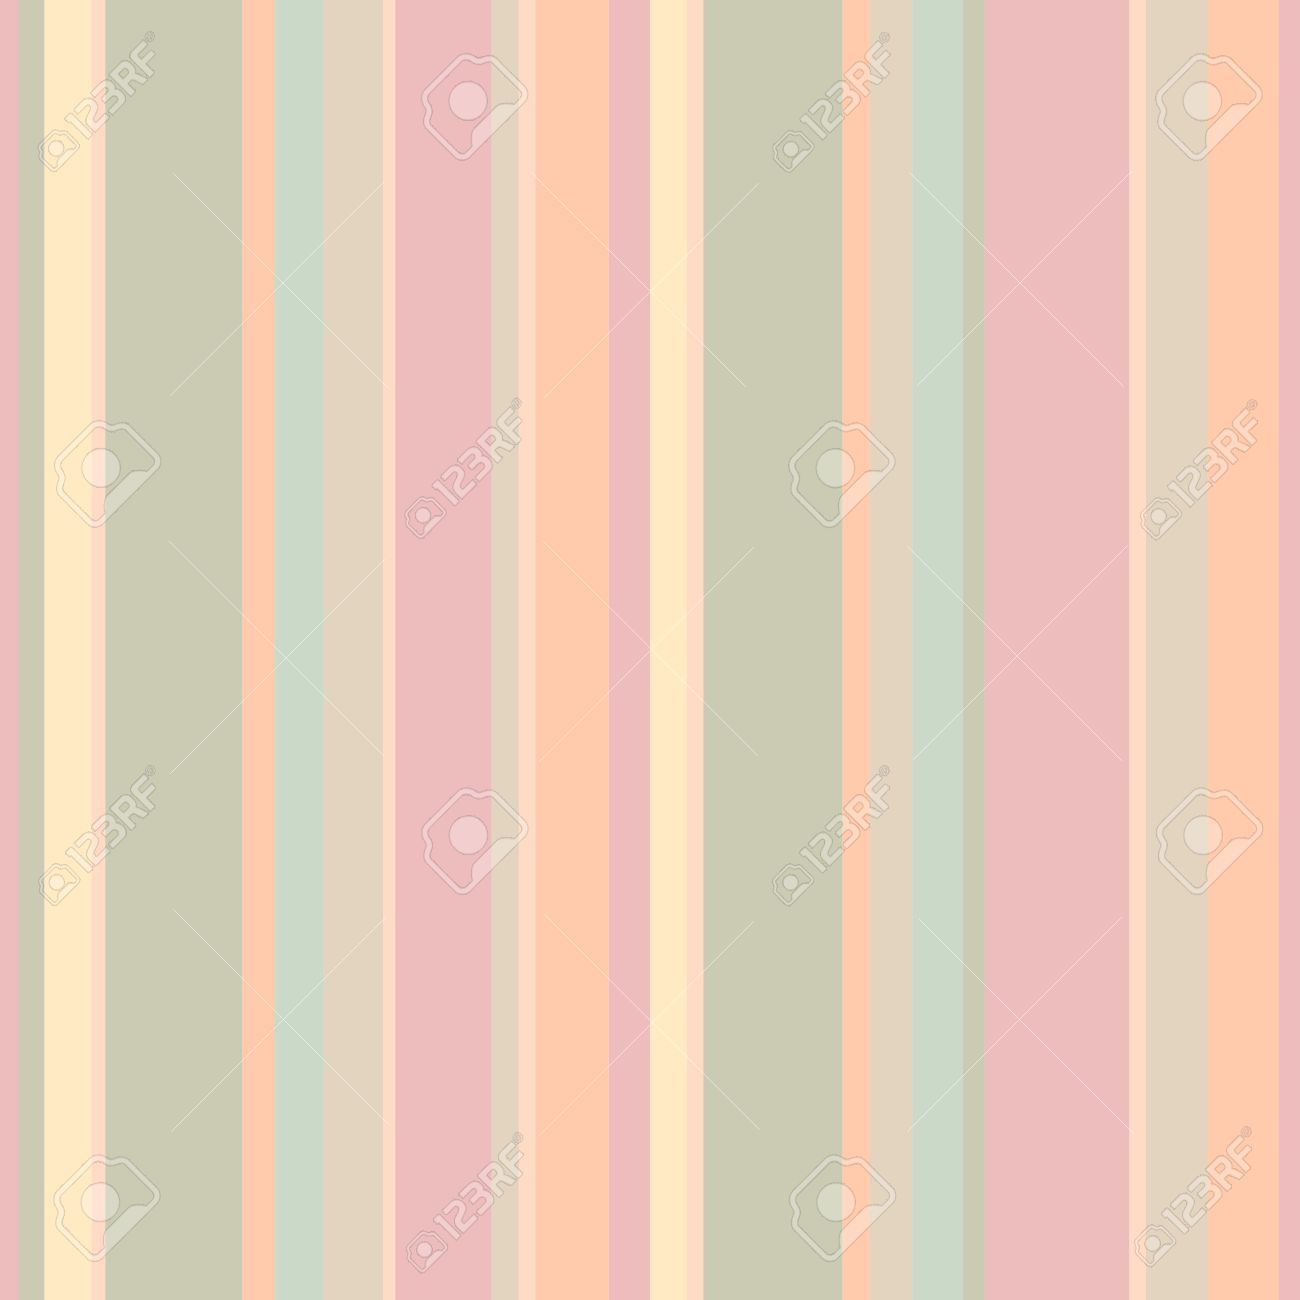 Abstract pastel wallpaper with vertical strips. Seamless colorful background Stock Photo - 51915628